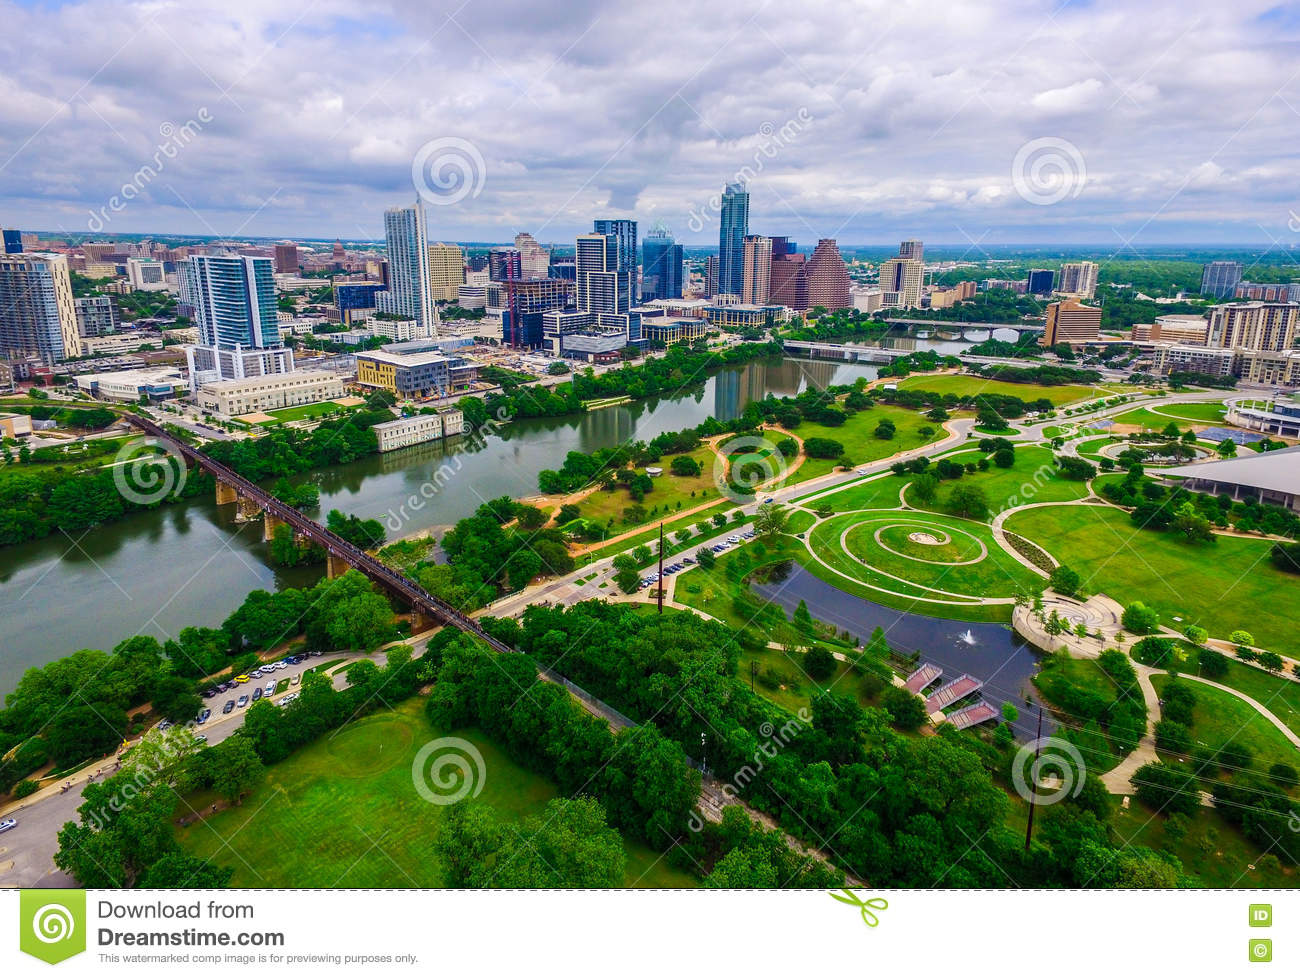 Wide Angle Green Paradise Over Modern Butler Park Capital City Skyline View of Austin Texas